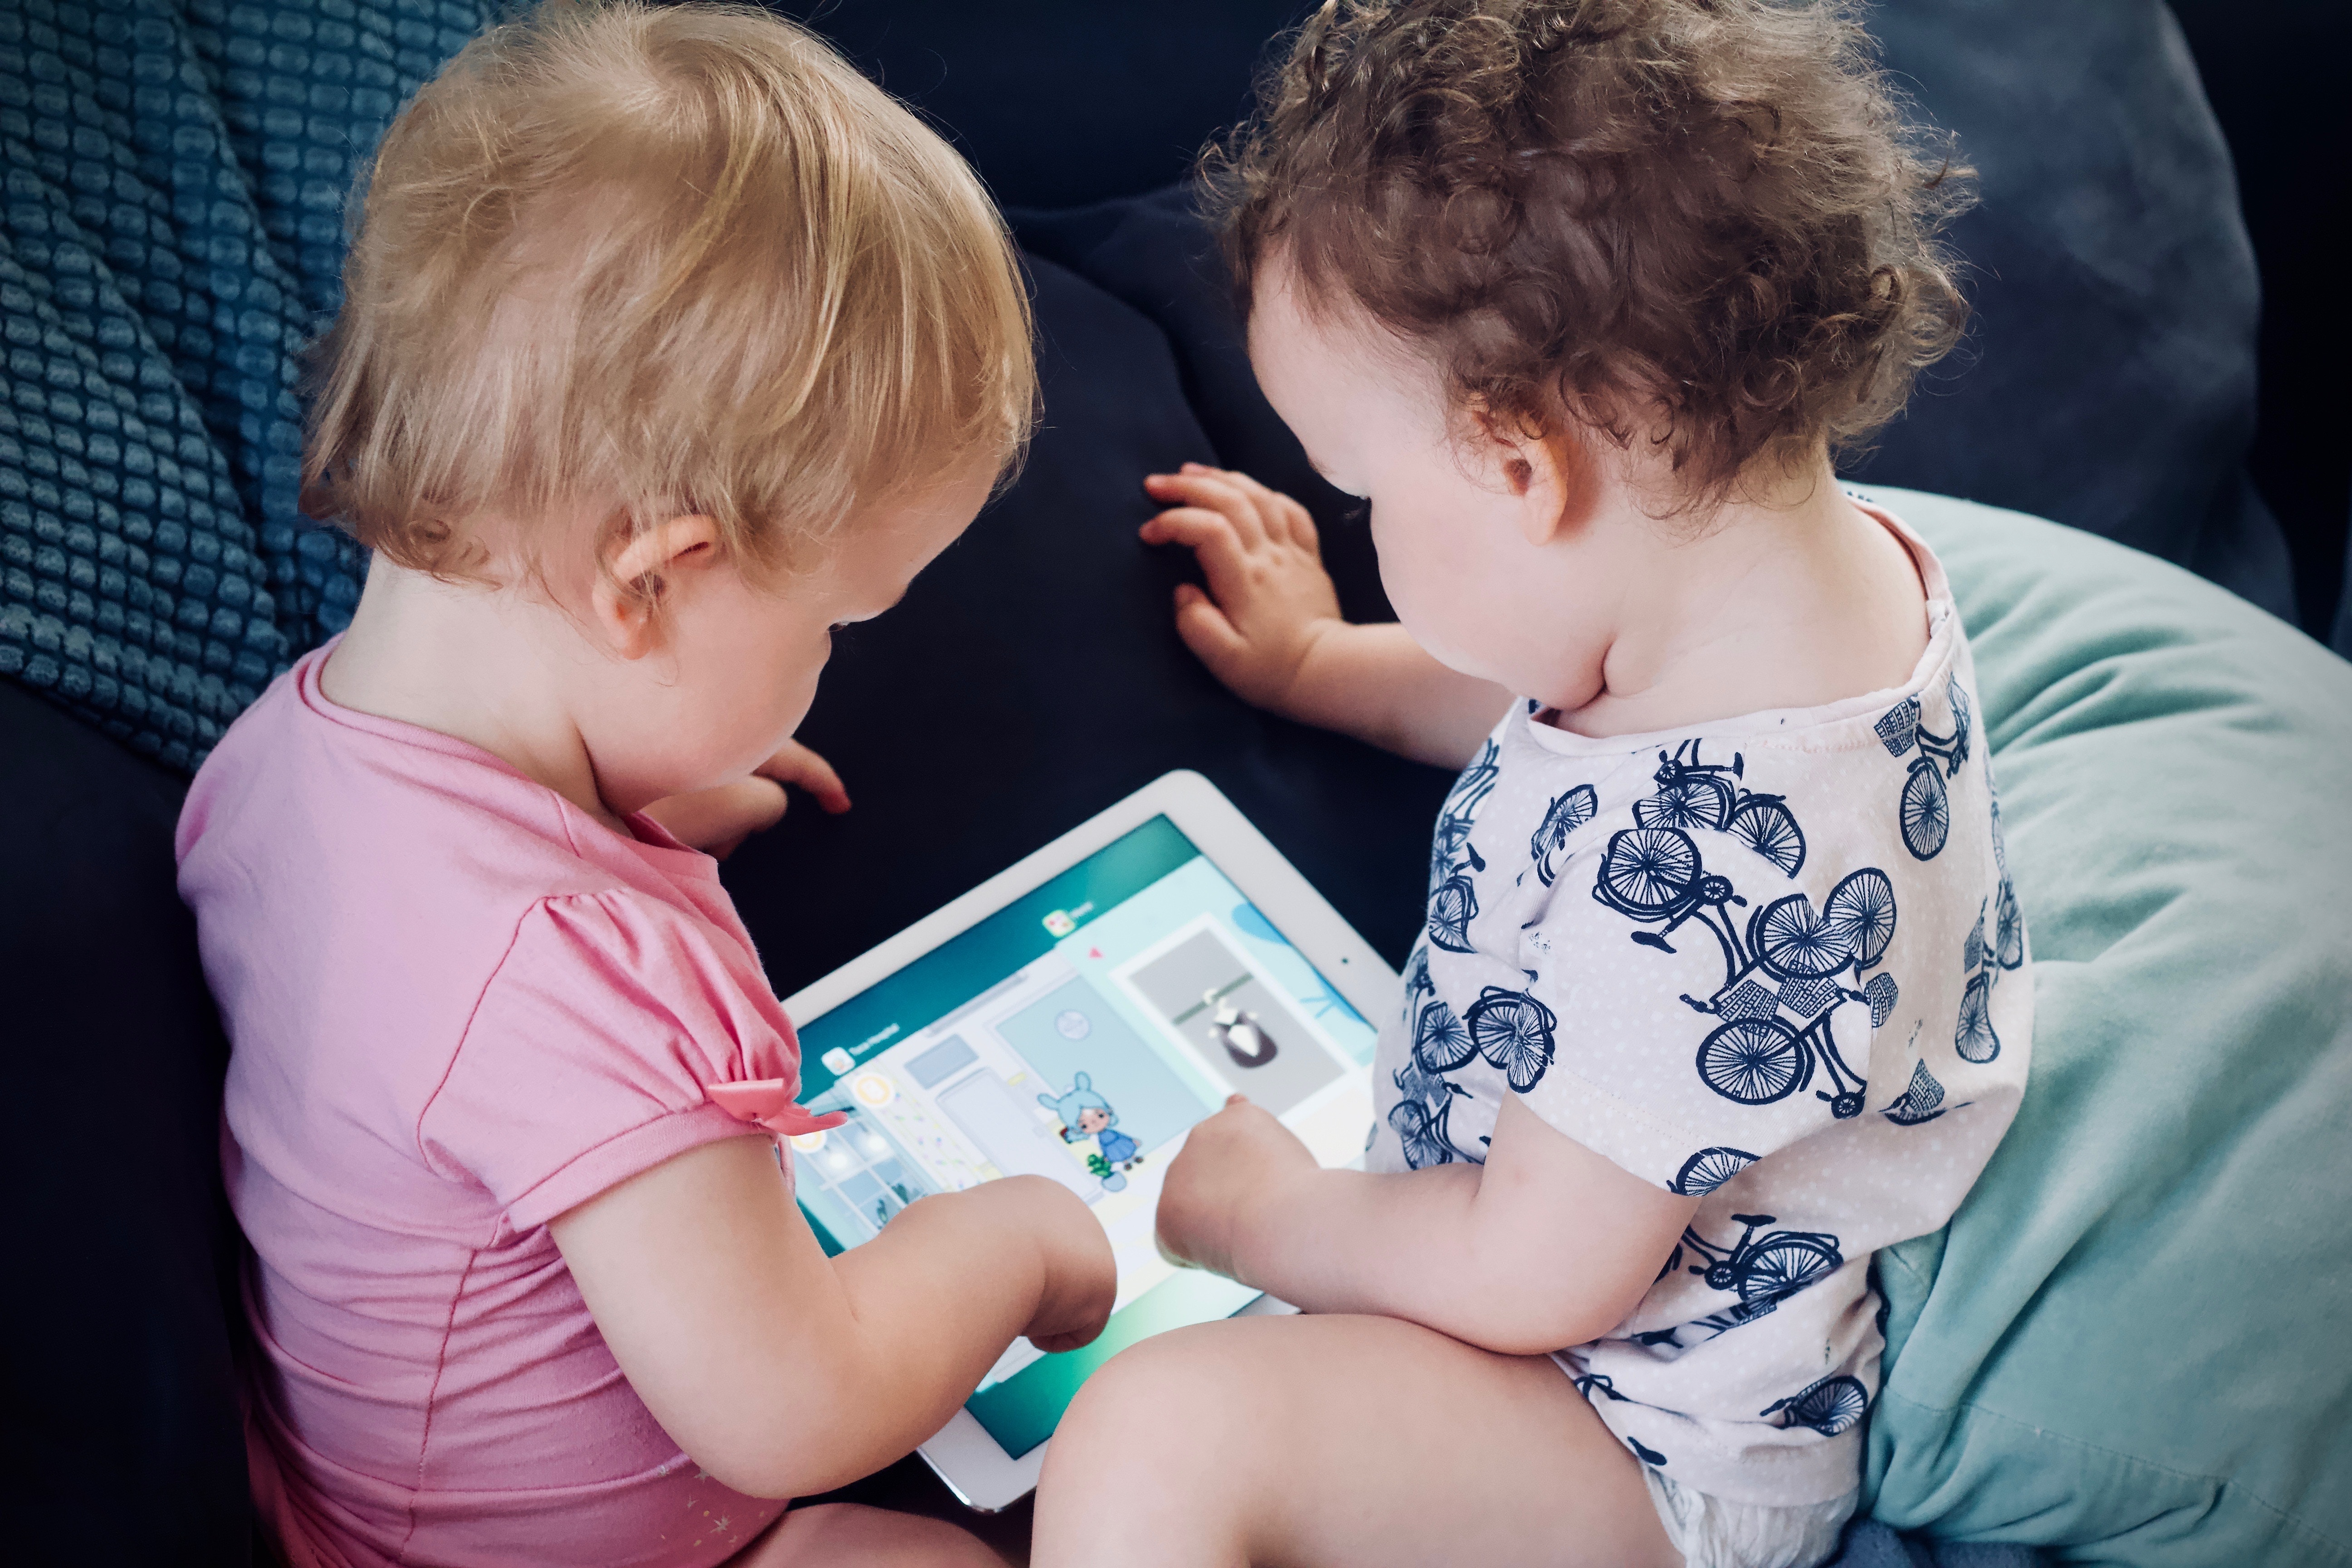 Babies using technology